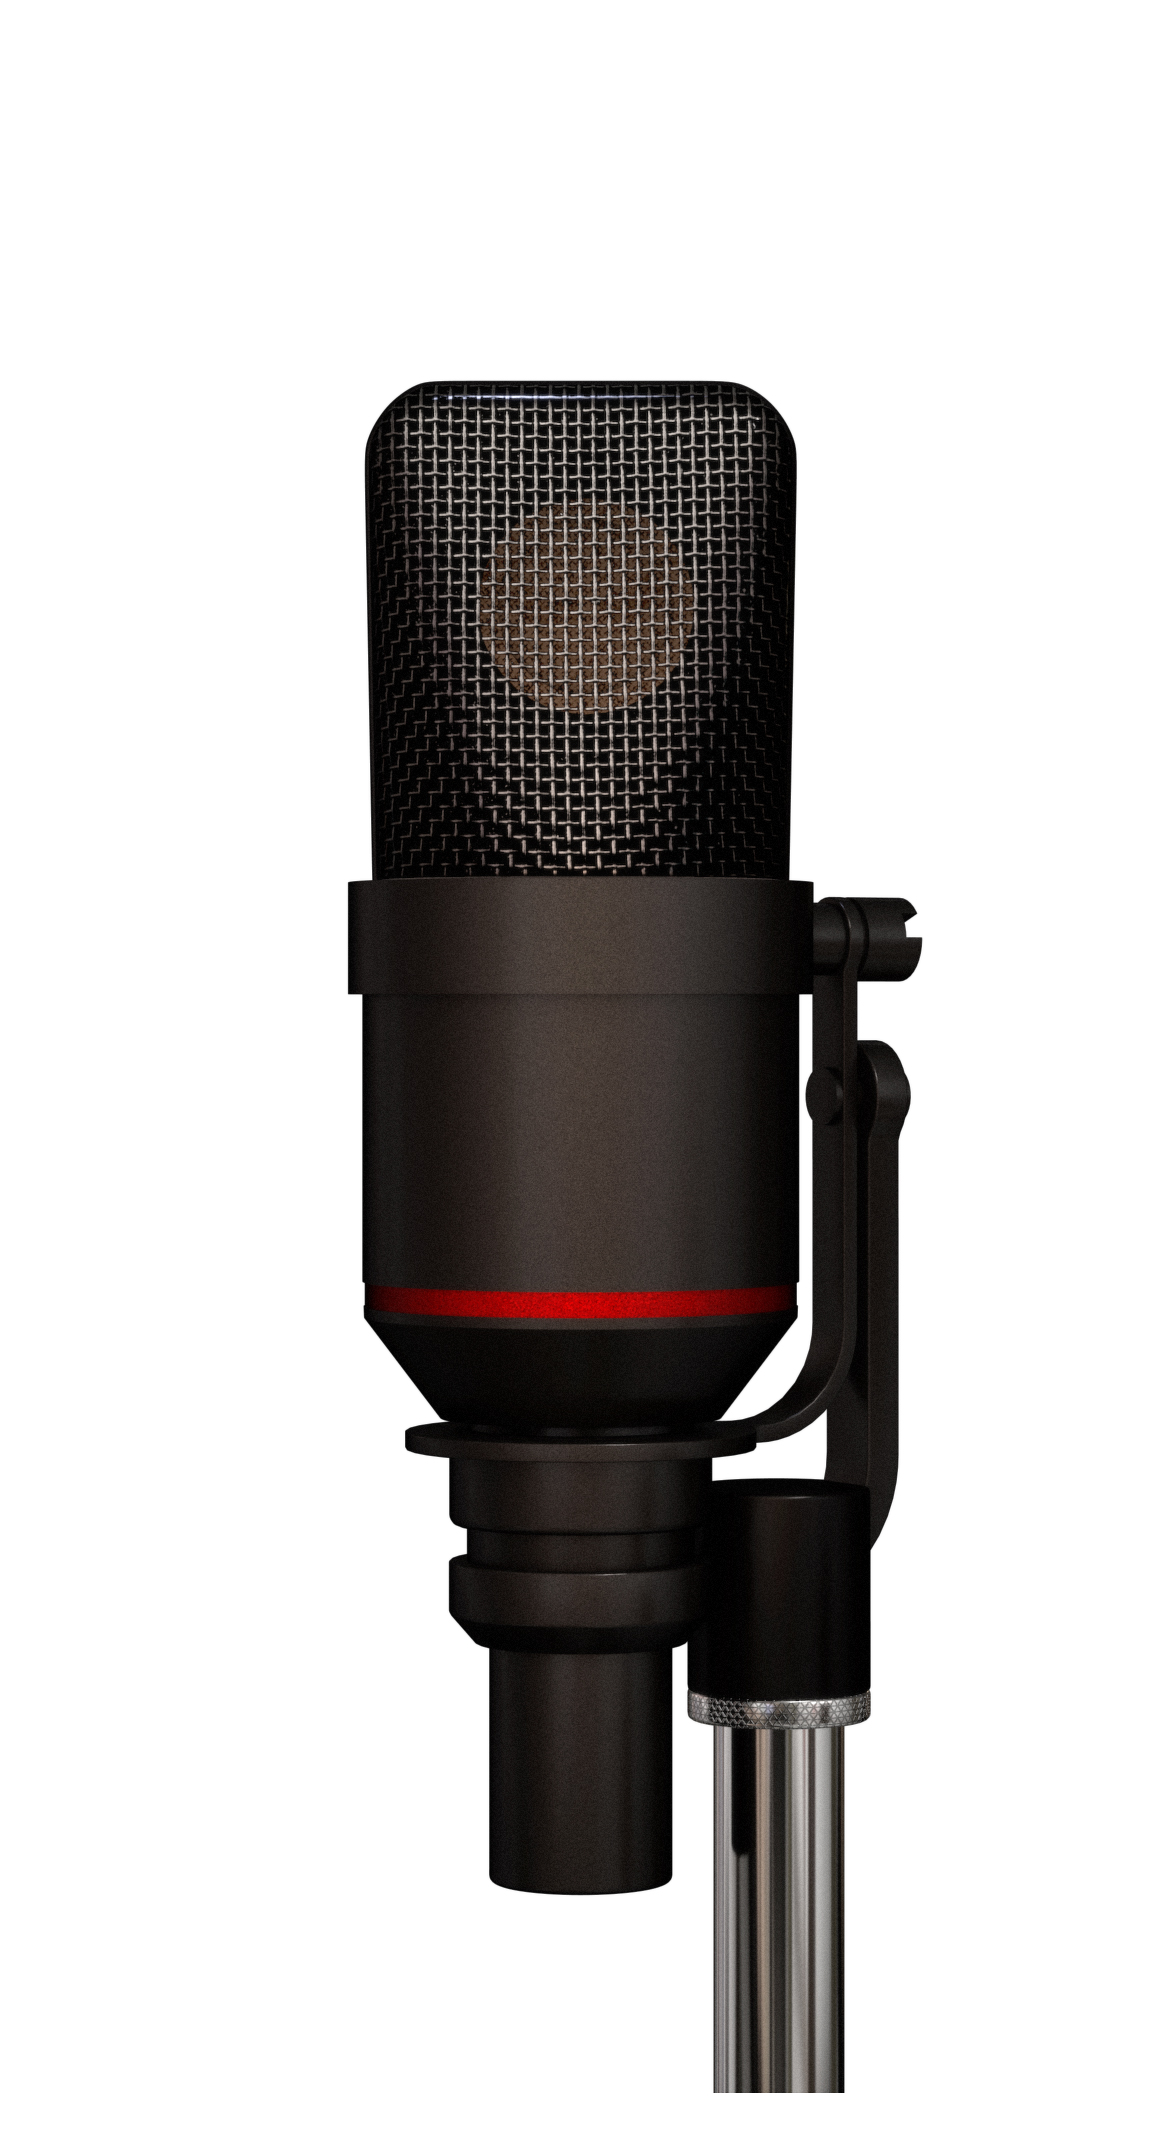 Ik Multimedia Mic Room Dynamic Amplifier To Use Speaker As Microphone Electronic Condenser 170 Based On Neumann Tlm